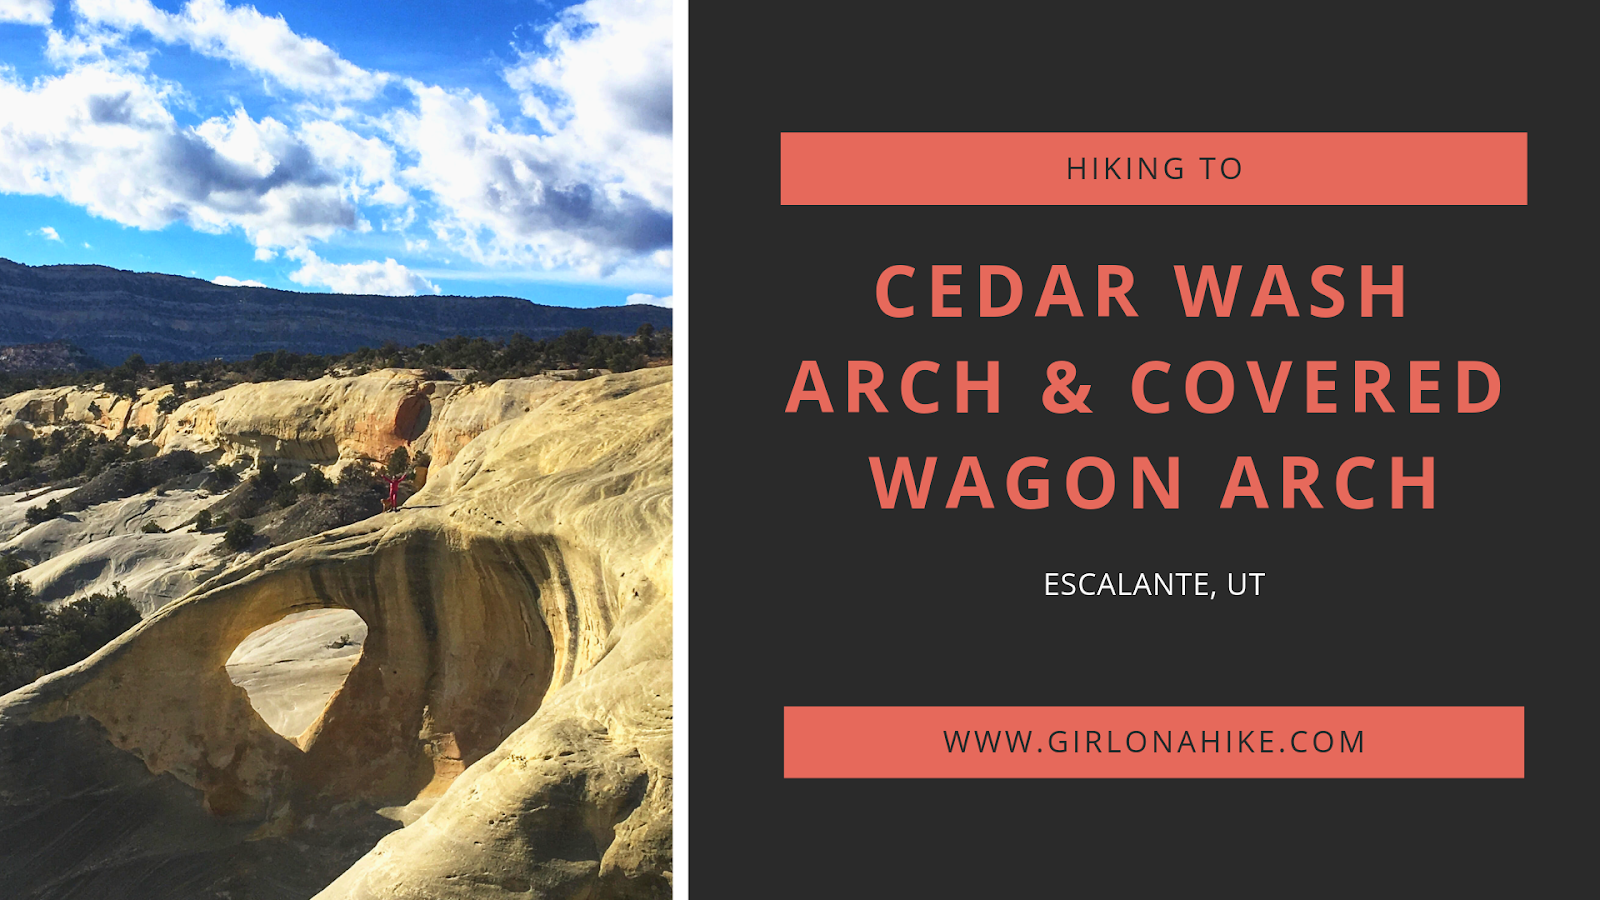 Cedar Wash Arch & Covered Wagon Arch, Escalante